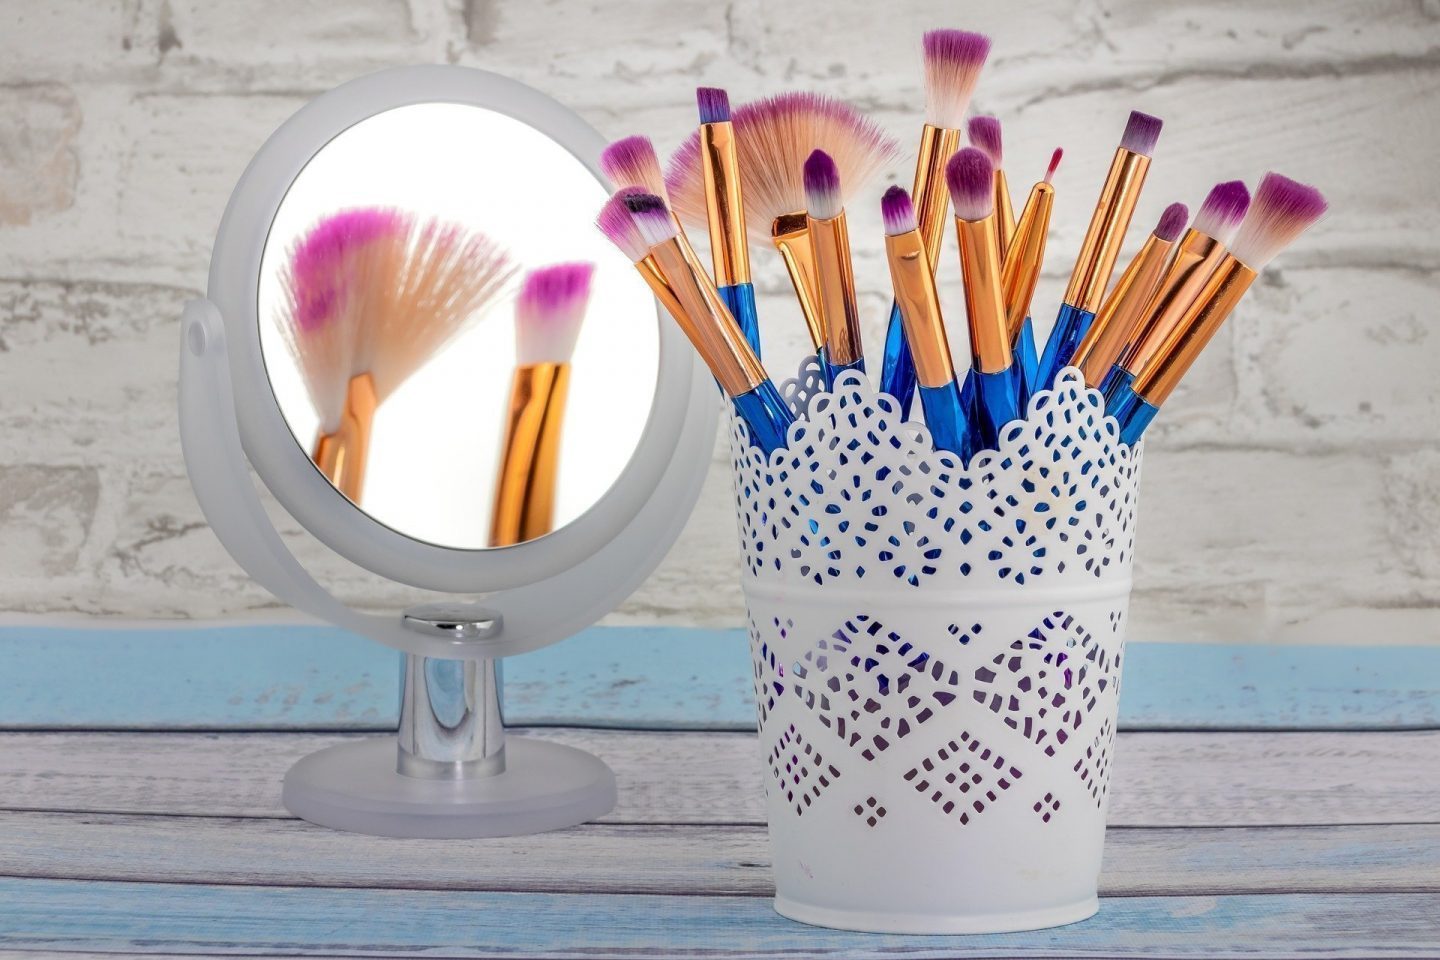 blue makeup brushes in a white container next to round mirror